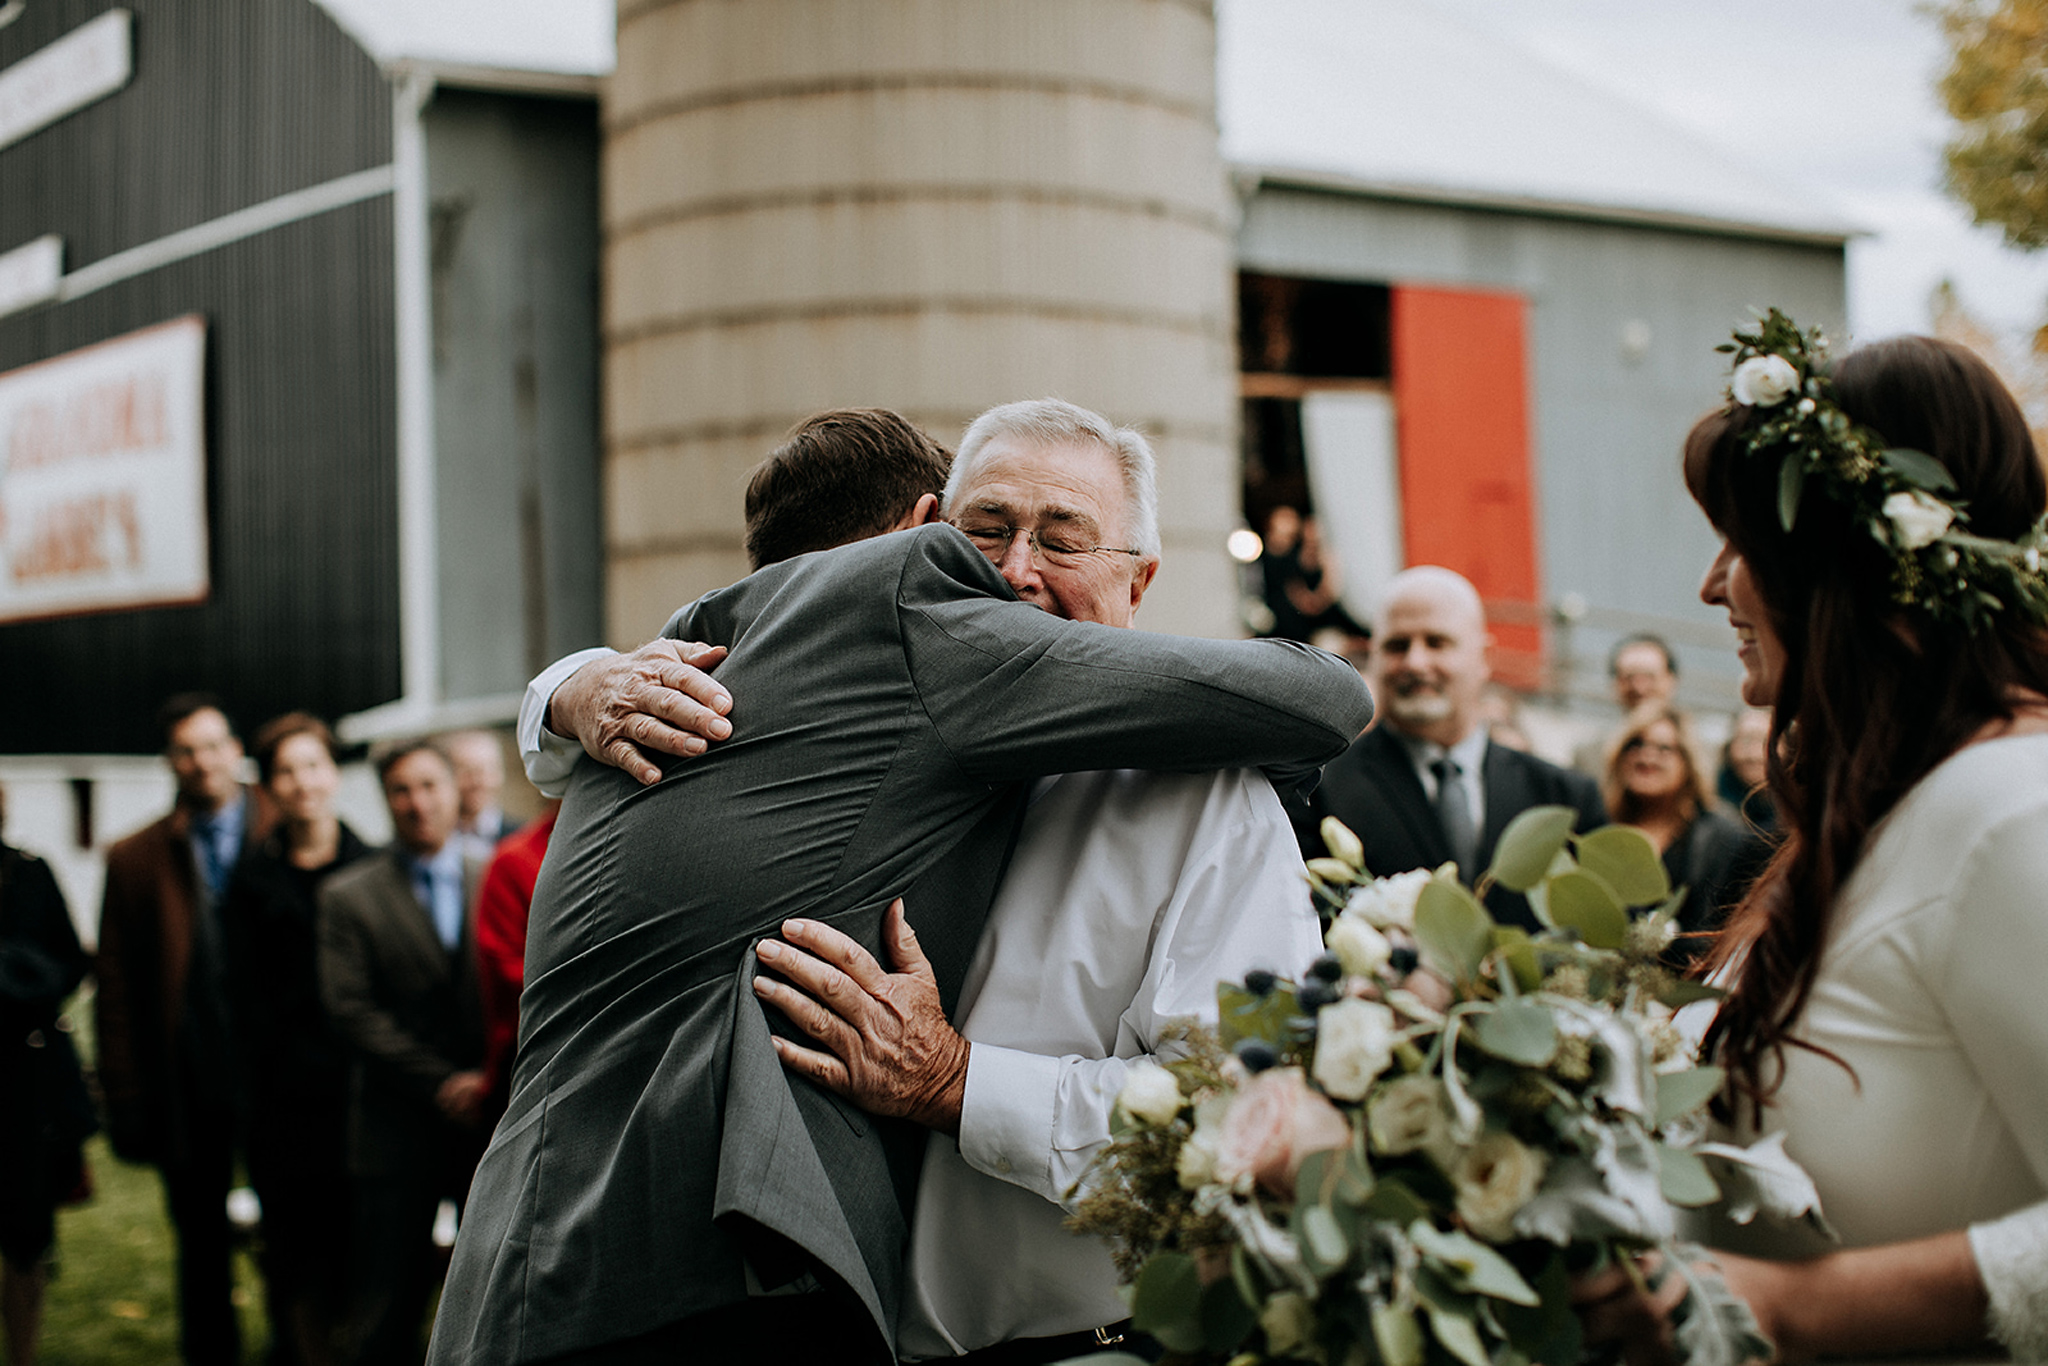 father of the bride welcomes groom into family at outdoor ceremo